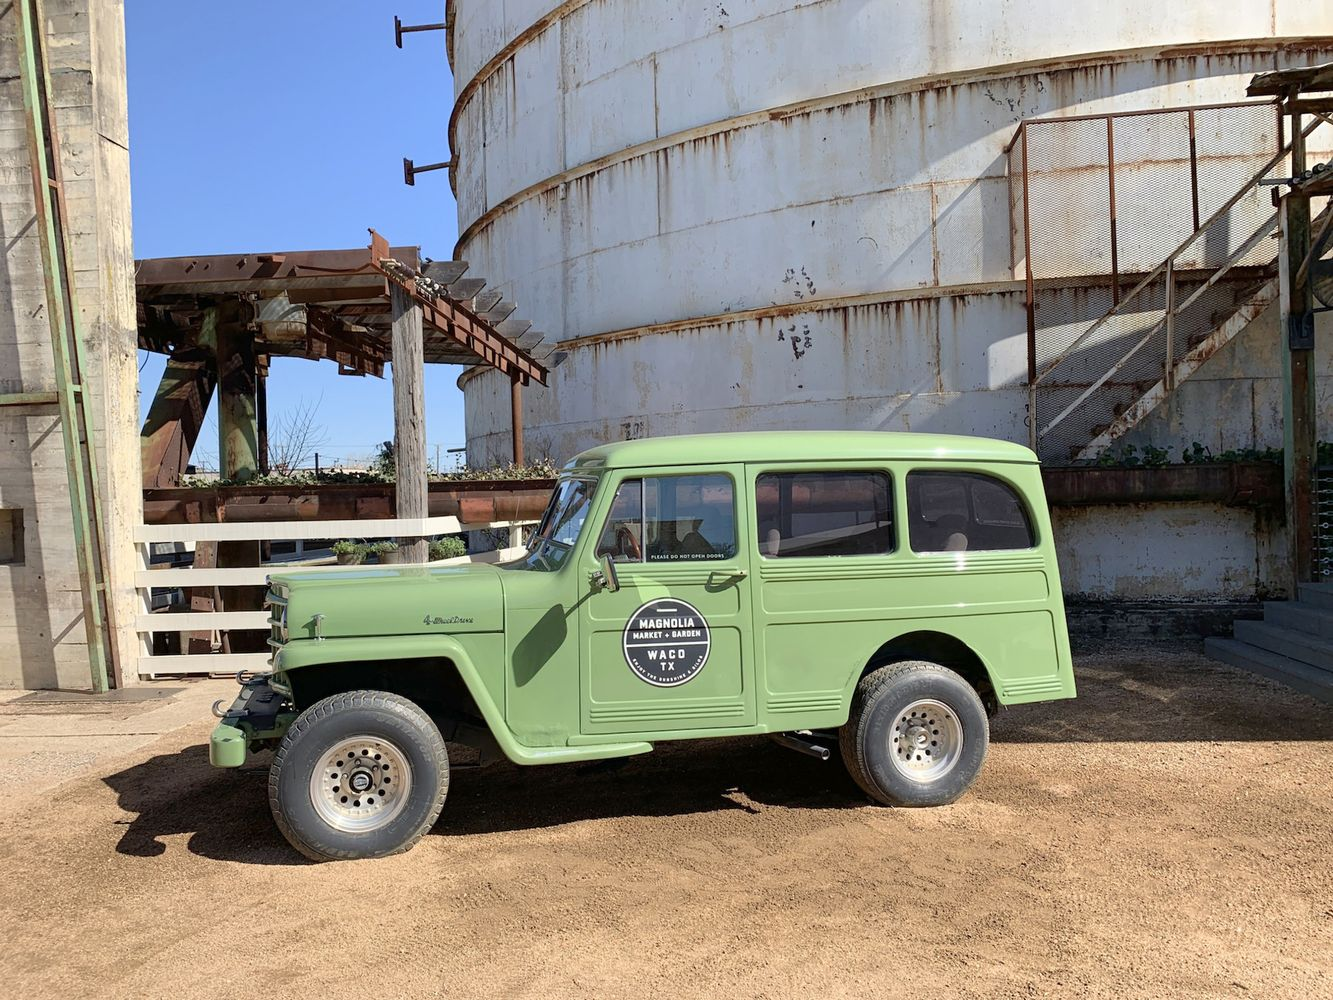 Green Car in front of the Silos at Magnolia Market